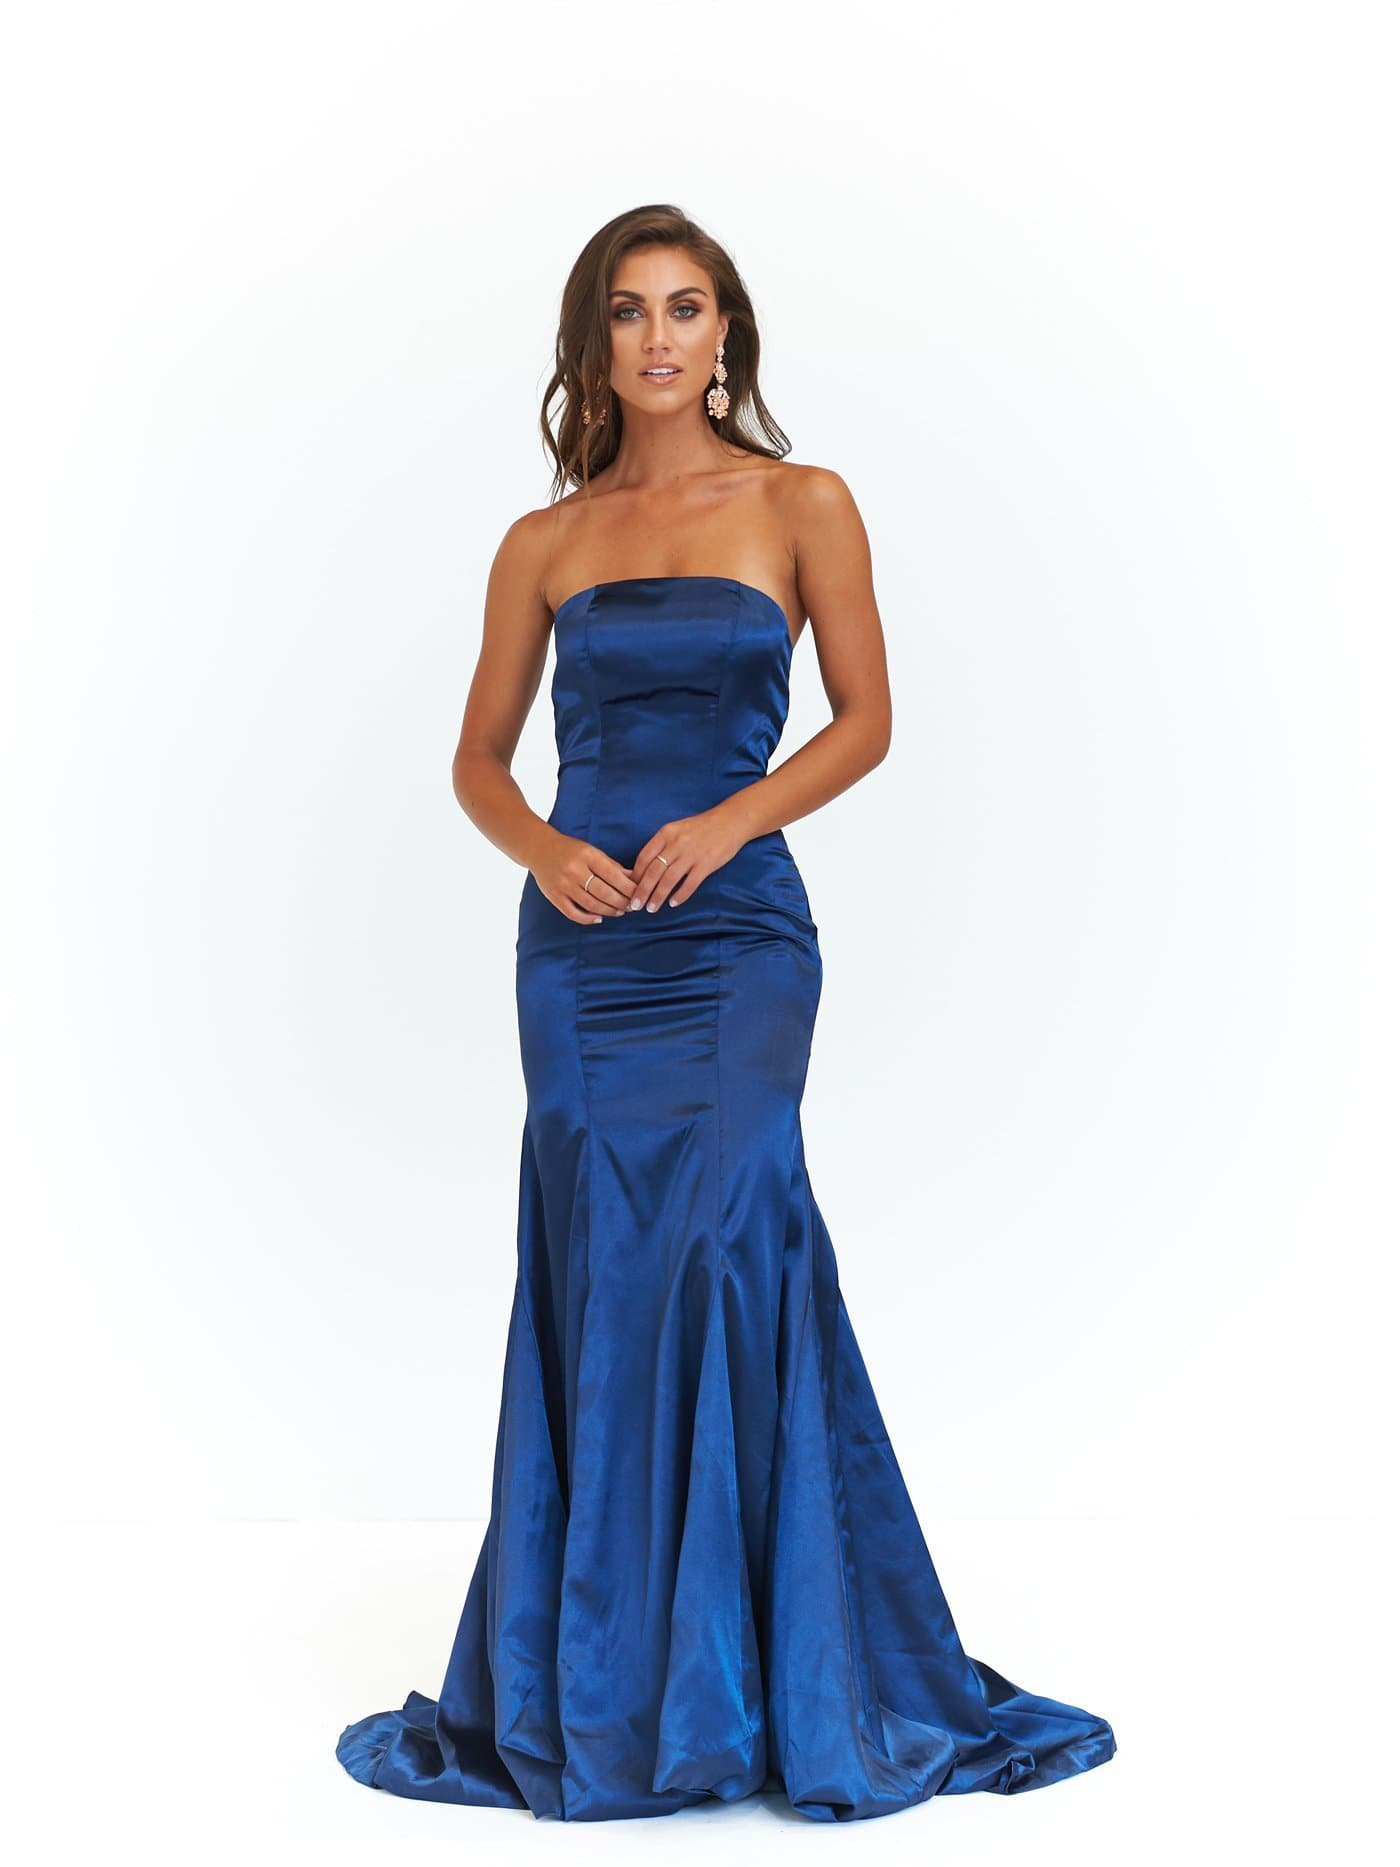 A&N Aino - Navy Satin Strapless Formal gown with Mermaid Train